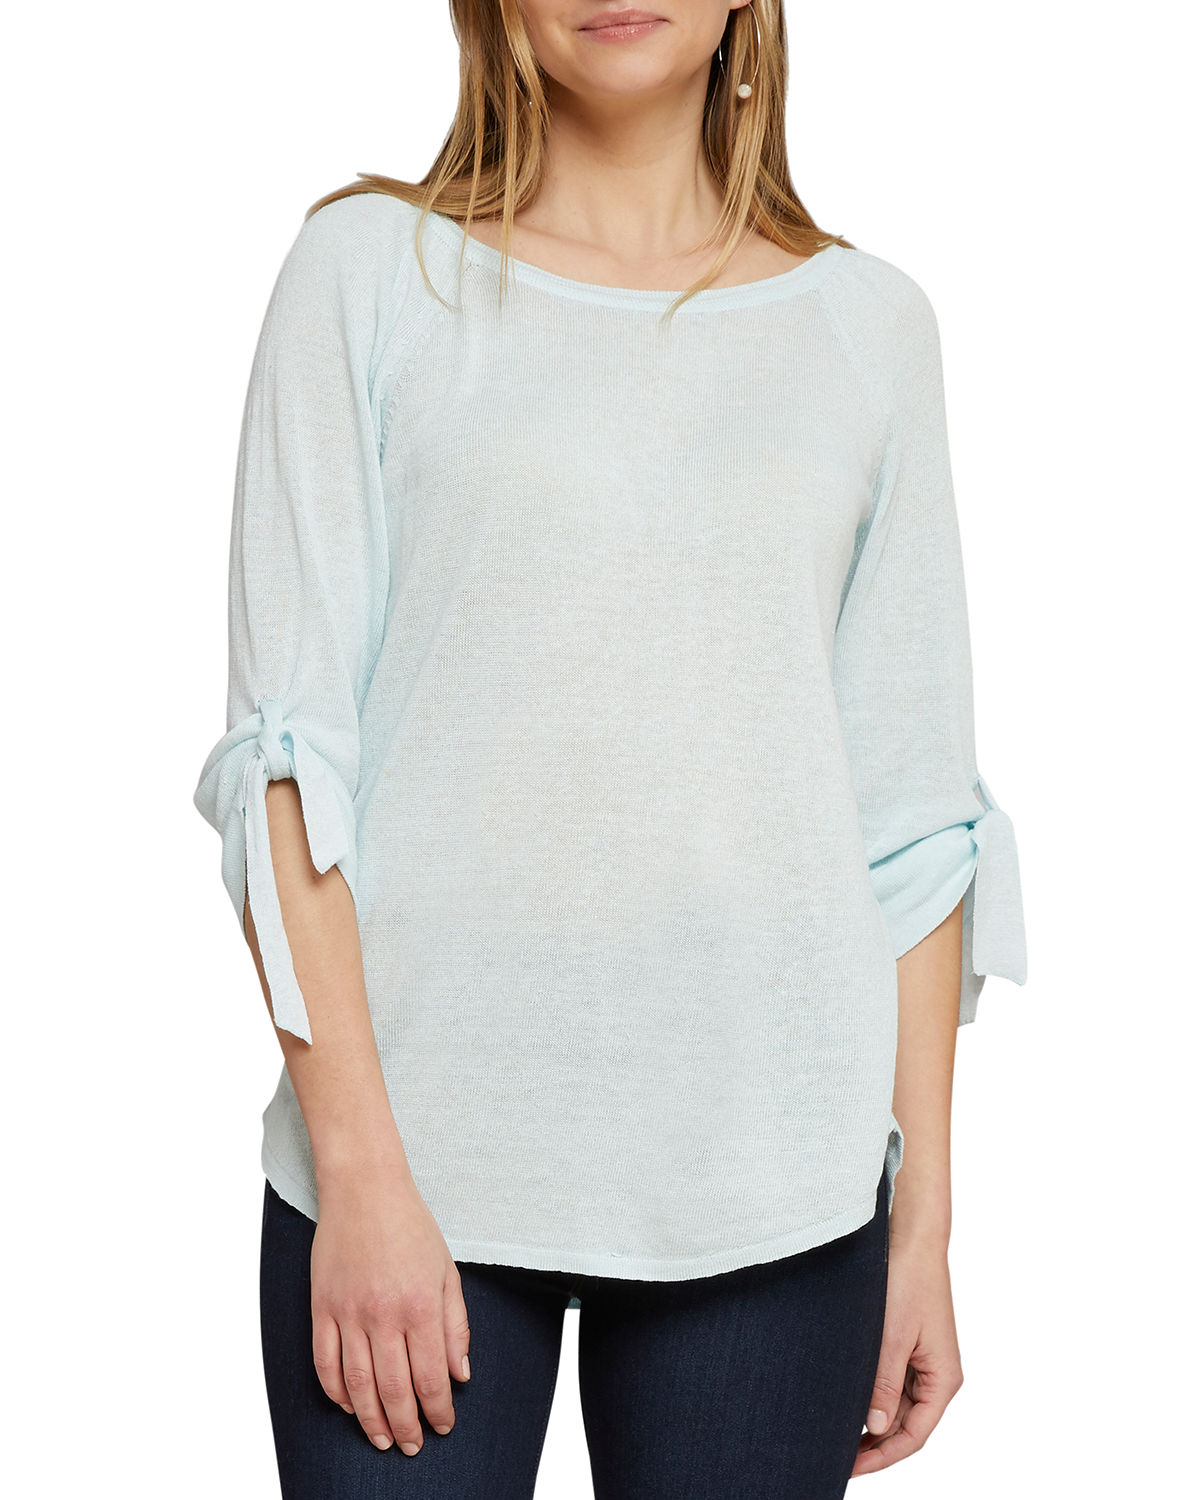 Nic+zoe Sweaters CASUAL FRIDAY BOAT-NECK TIE-CUFF SWEATER